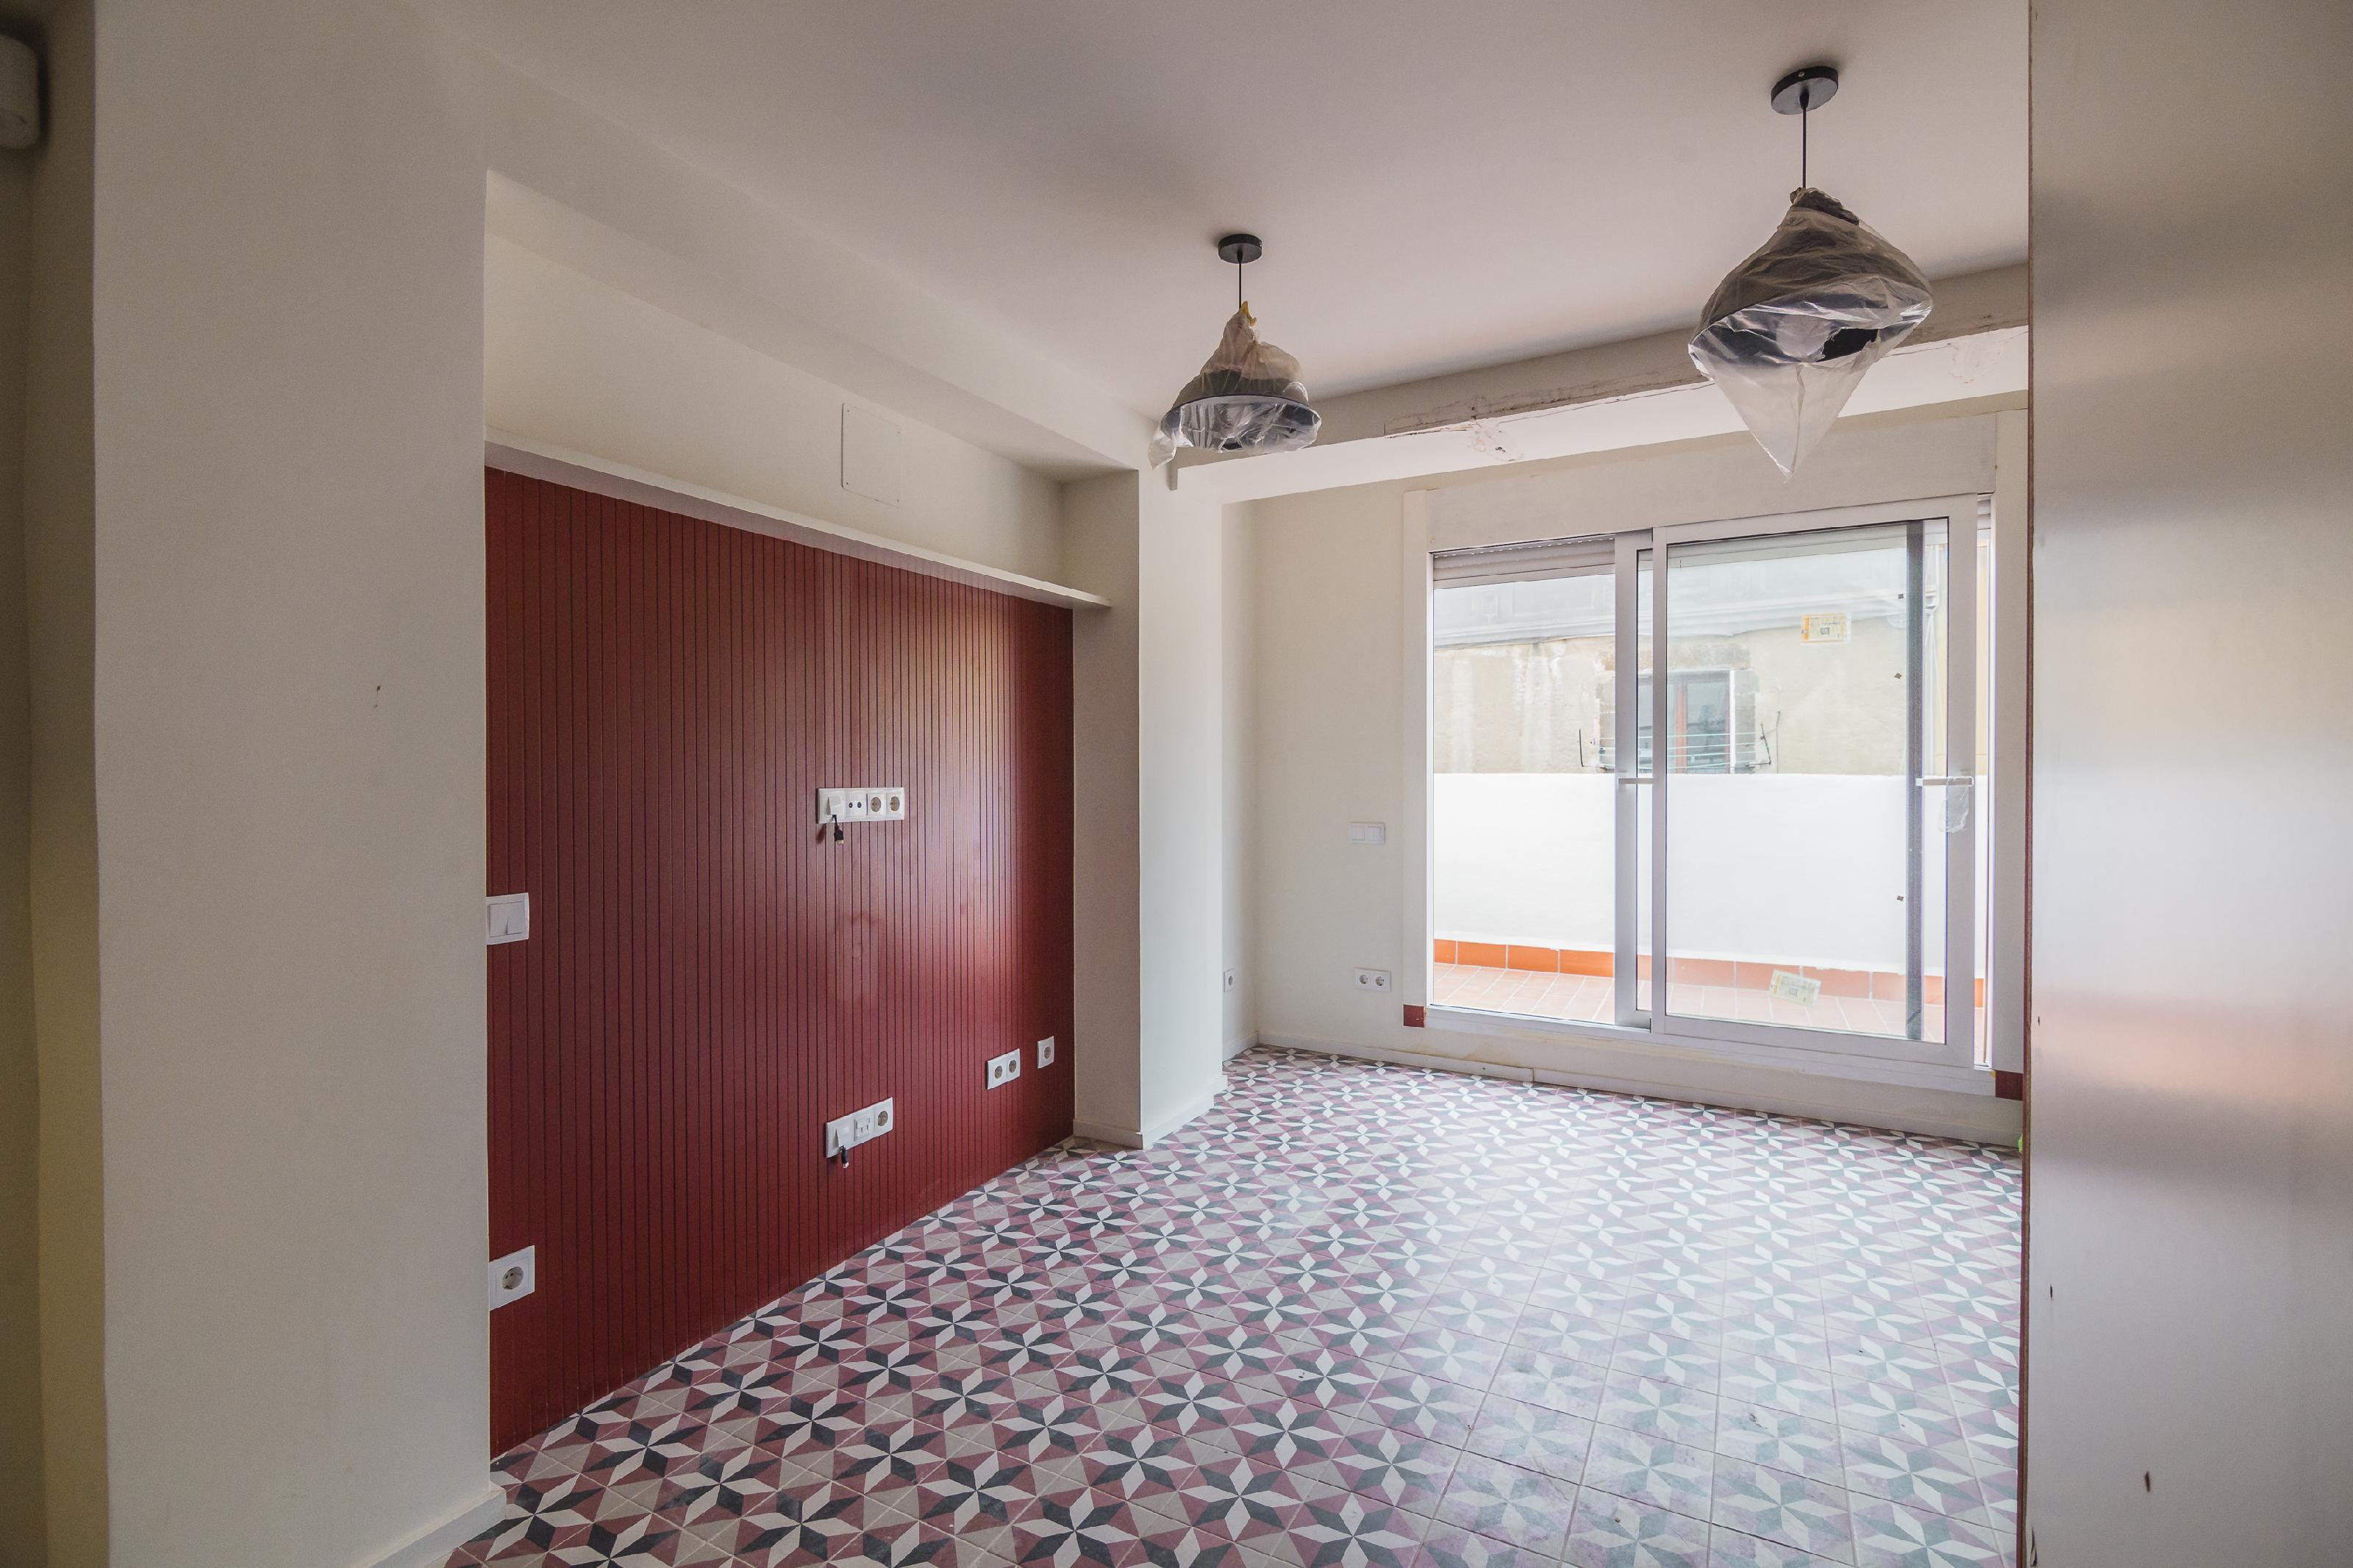 237520 Flat for sale in Ciutat Vella, St. Pere St. Caterina and La Ribera 5